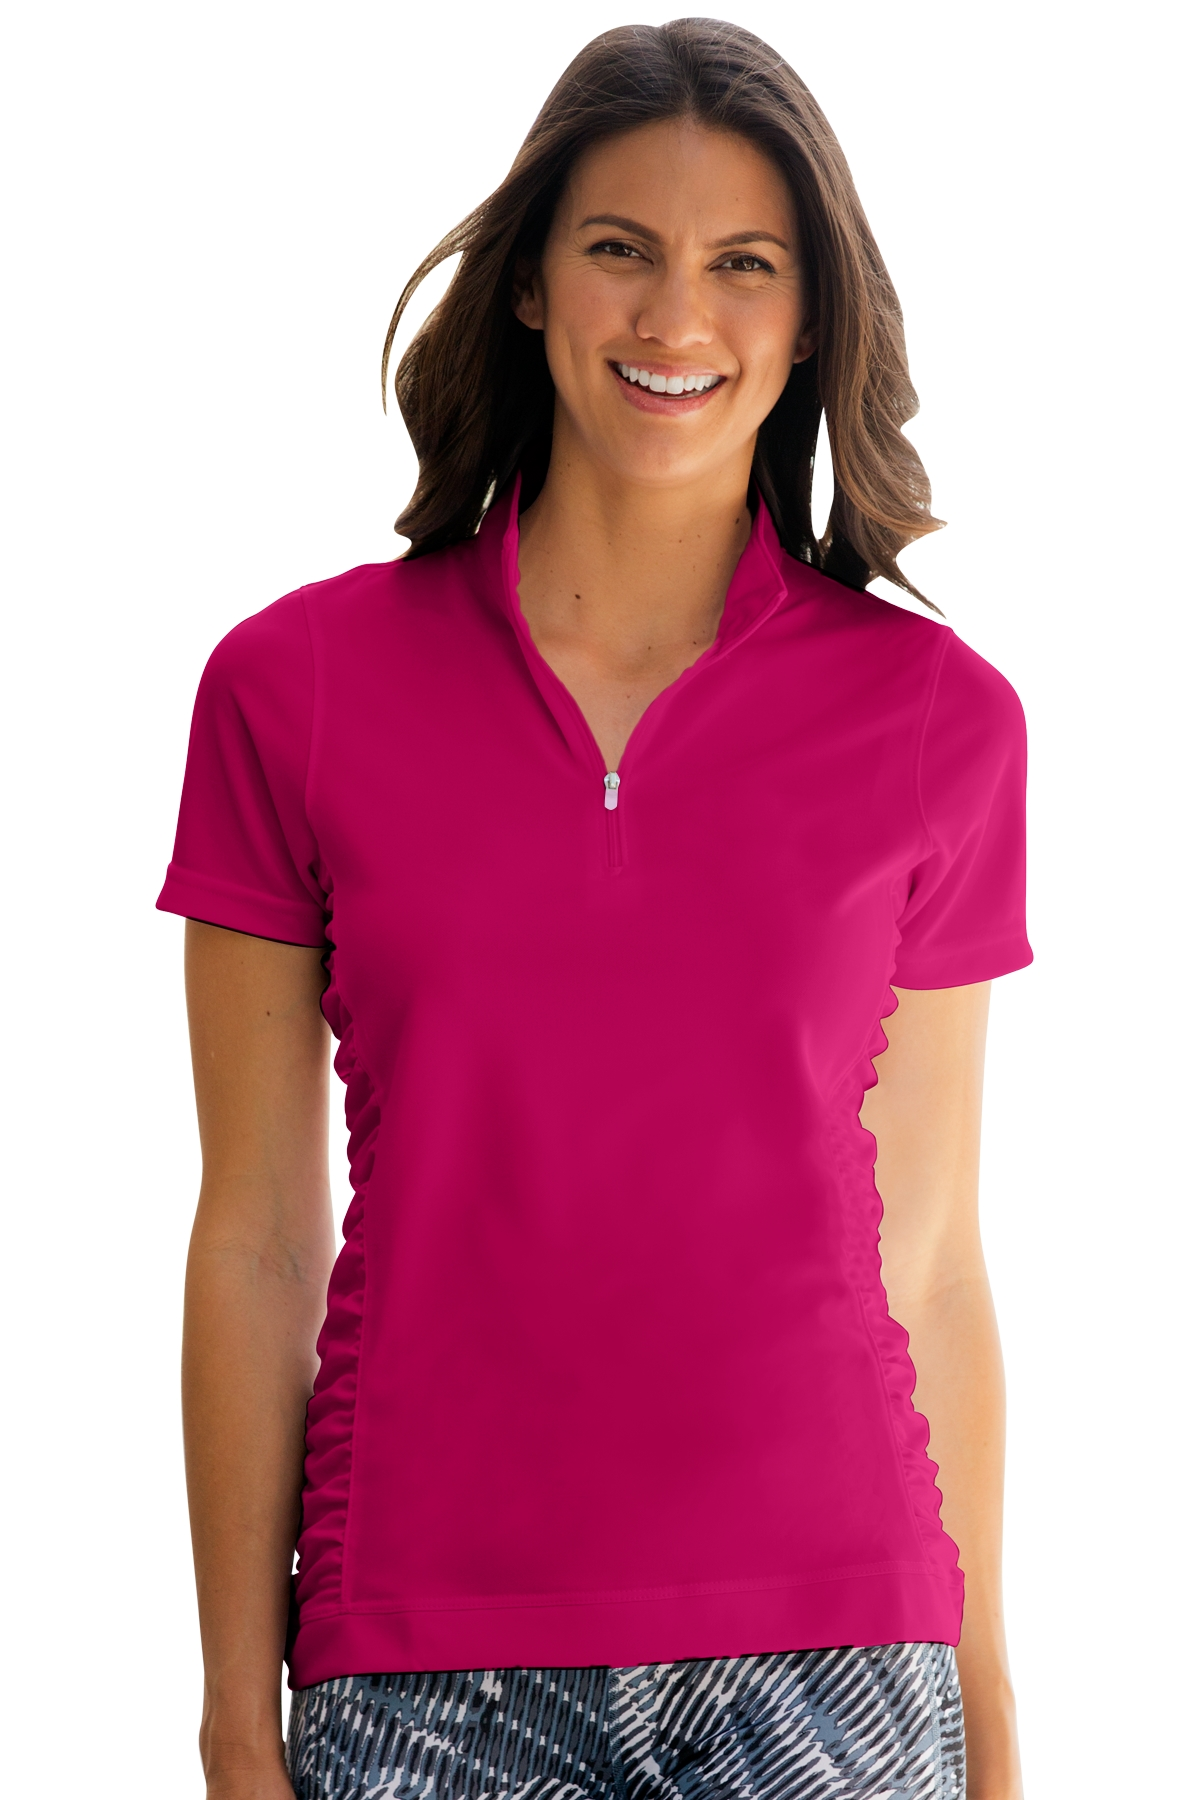 Vansport 2611 - Women's Omega Ruched Polo